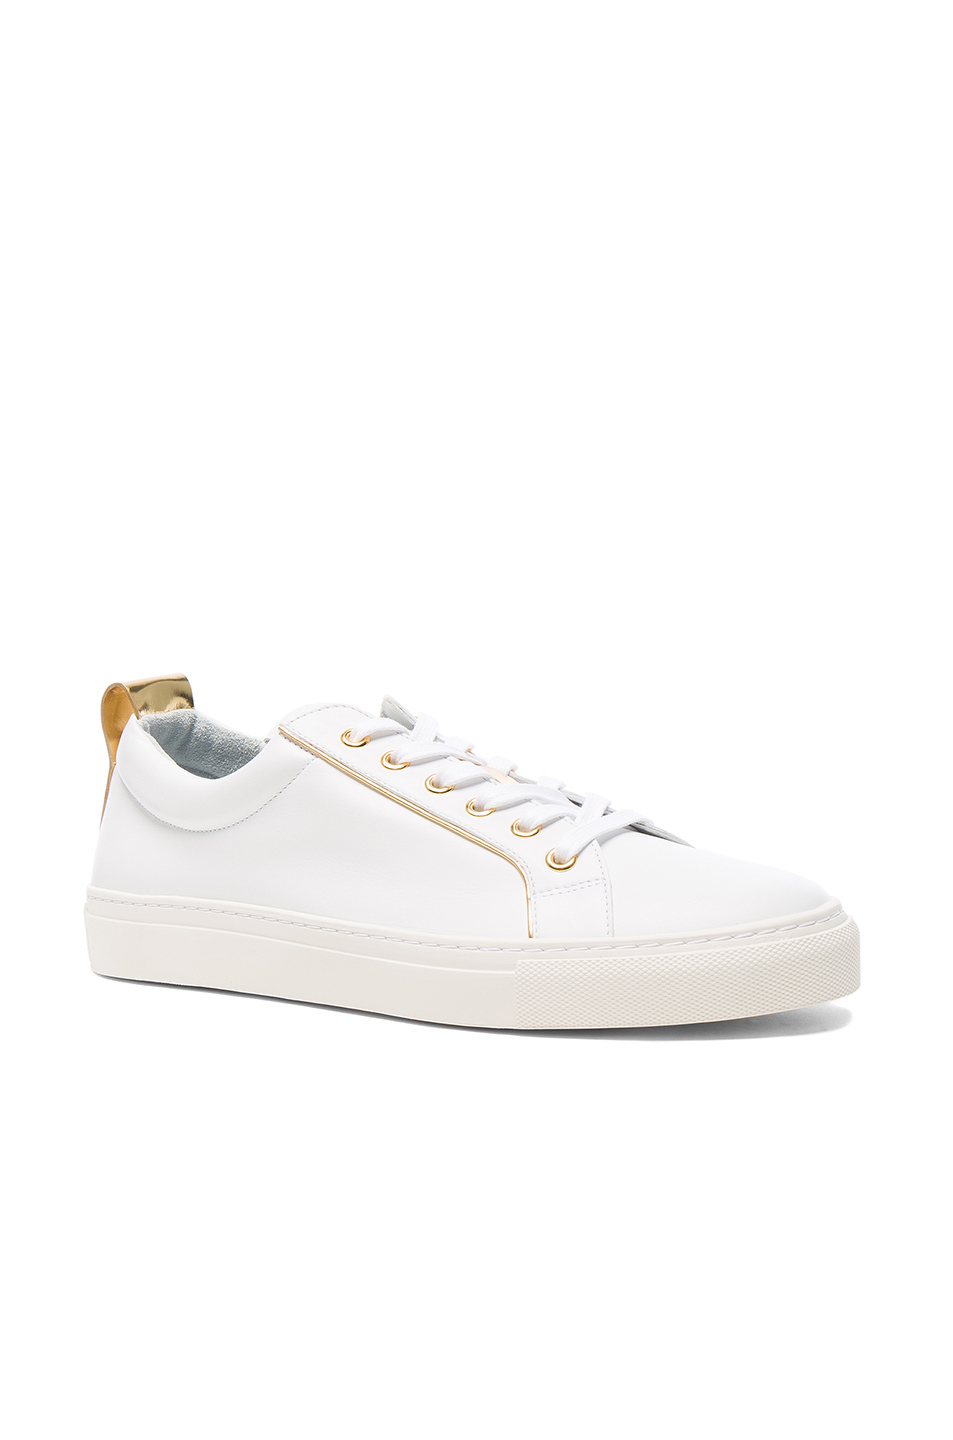 BALMAIN Gold Piping Sneakers in White